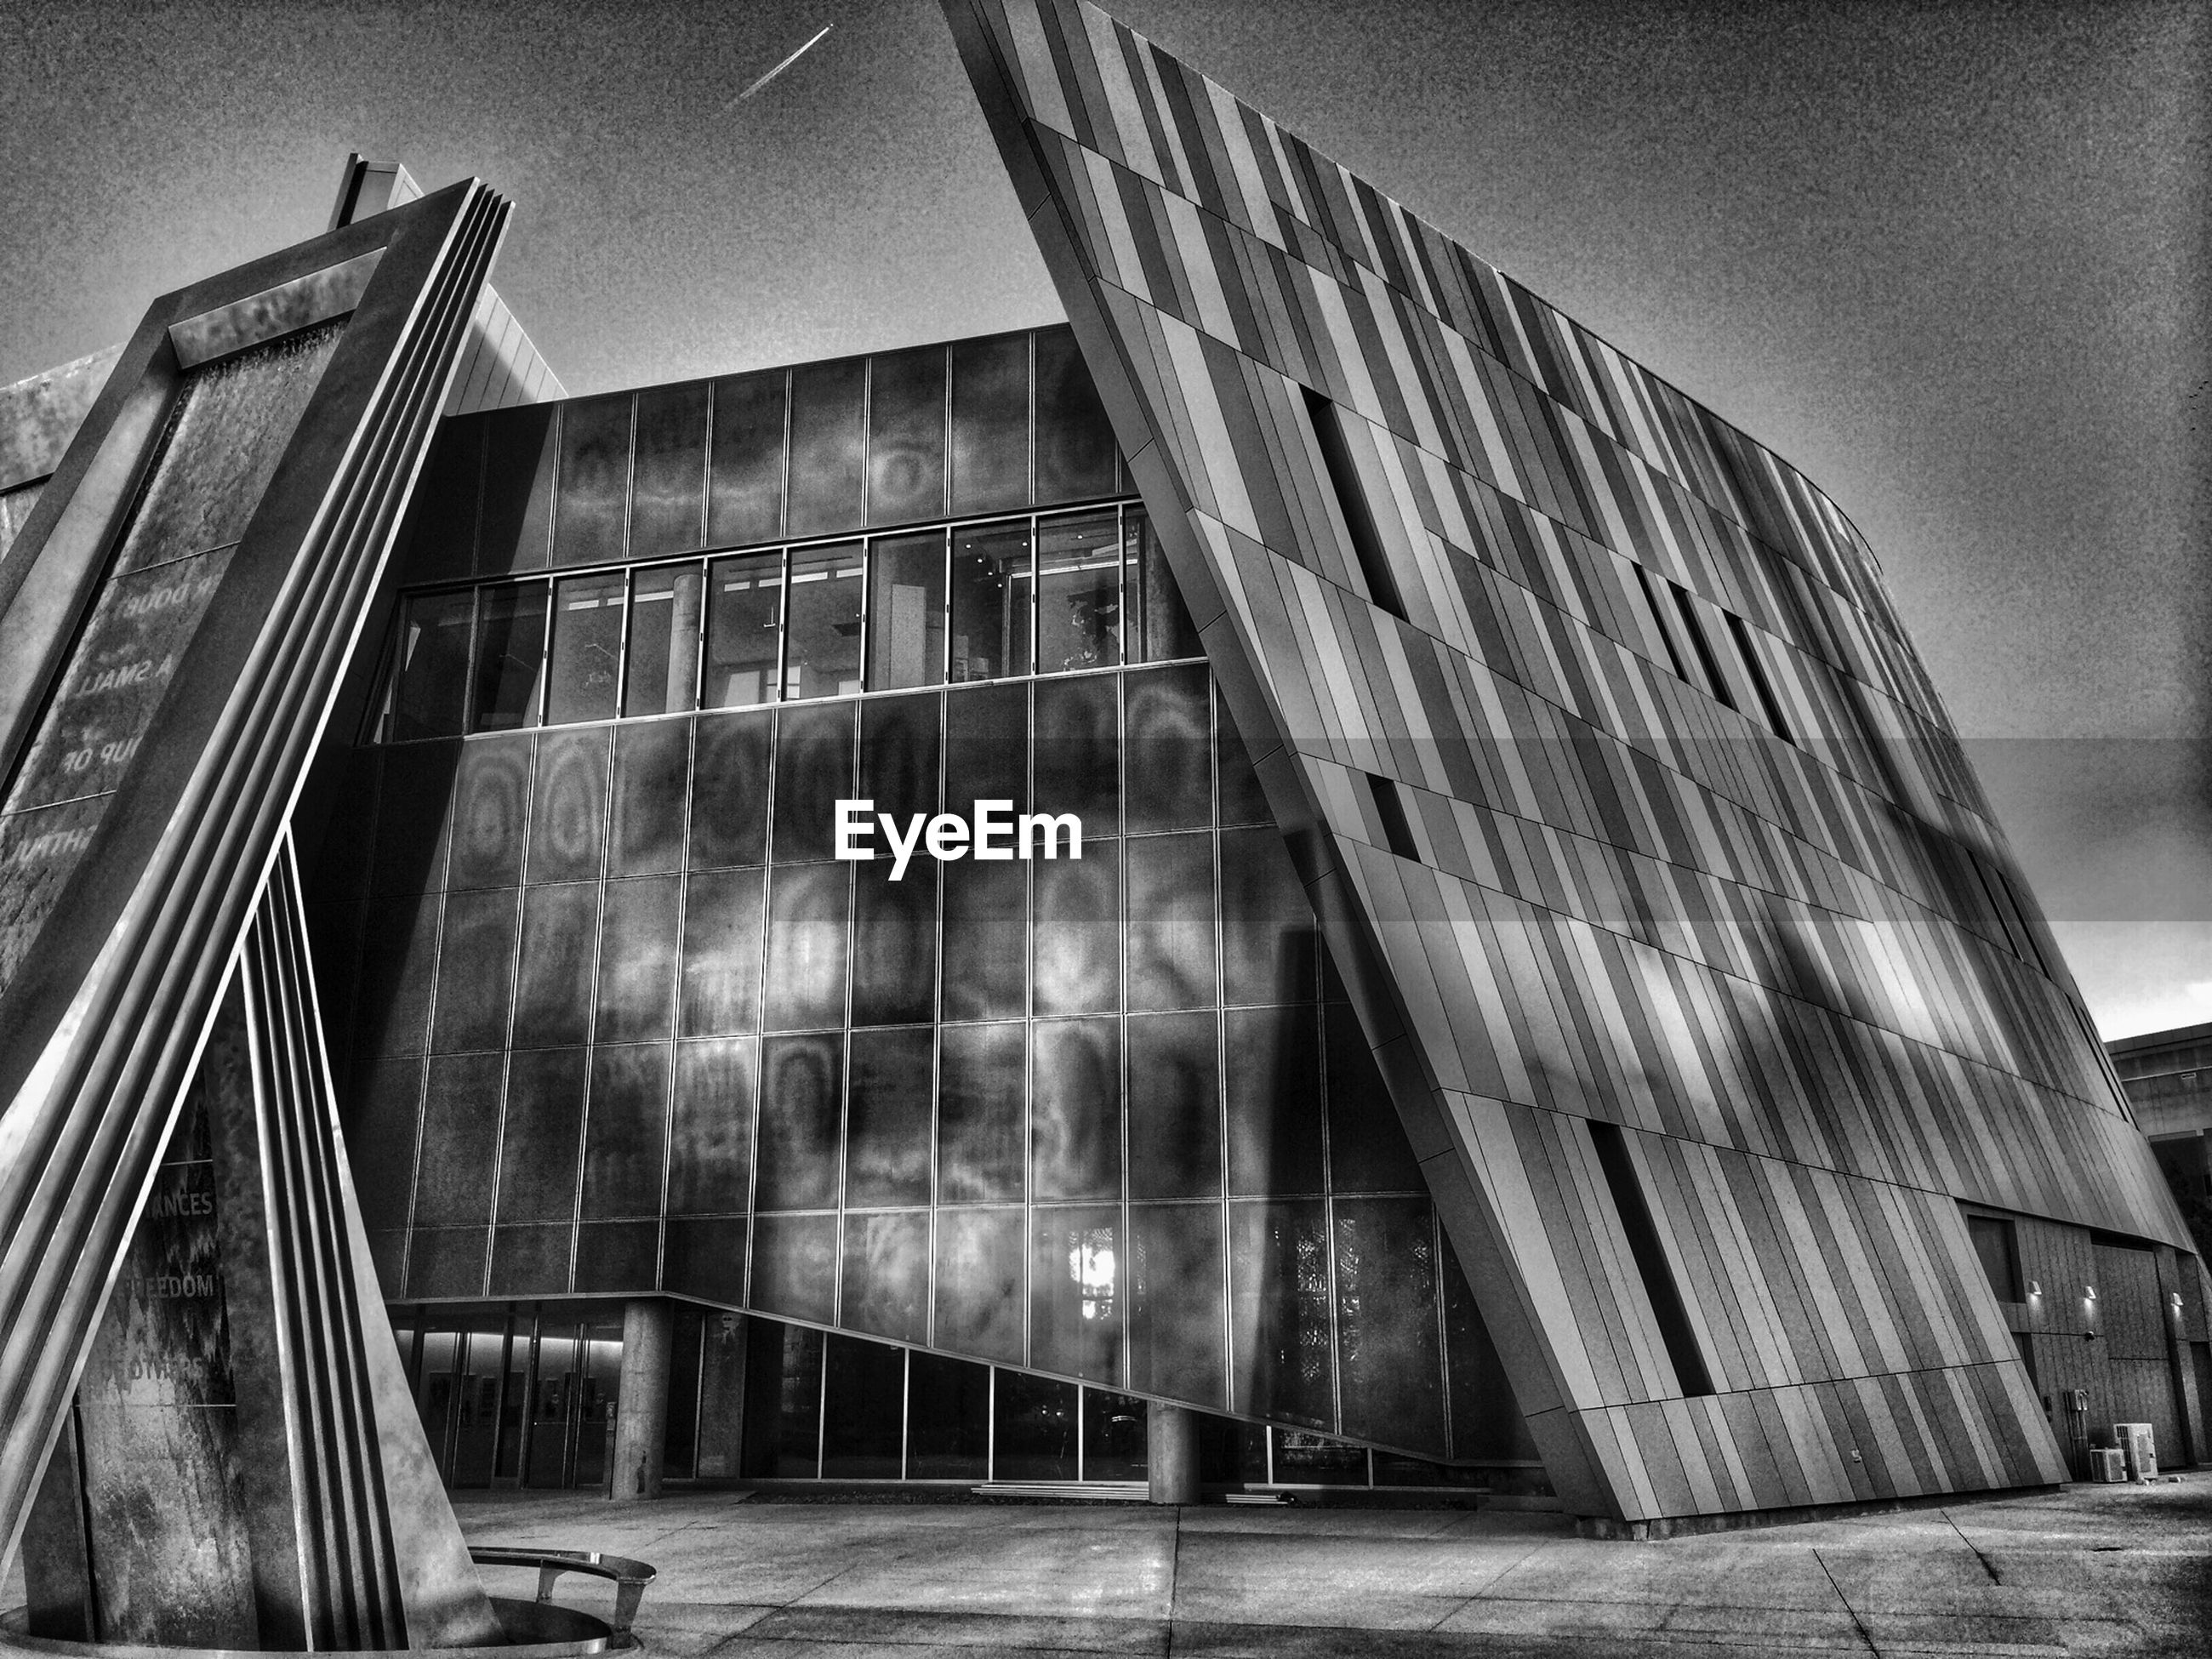 architecture, built structure, building exterior, low angle view, glass - material, window, building, reflection, modern, sky, city, office building, day, no people, outdoors, tall - high, sunlight, exterior, glass, residential building